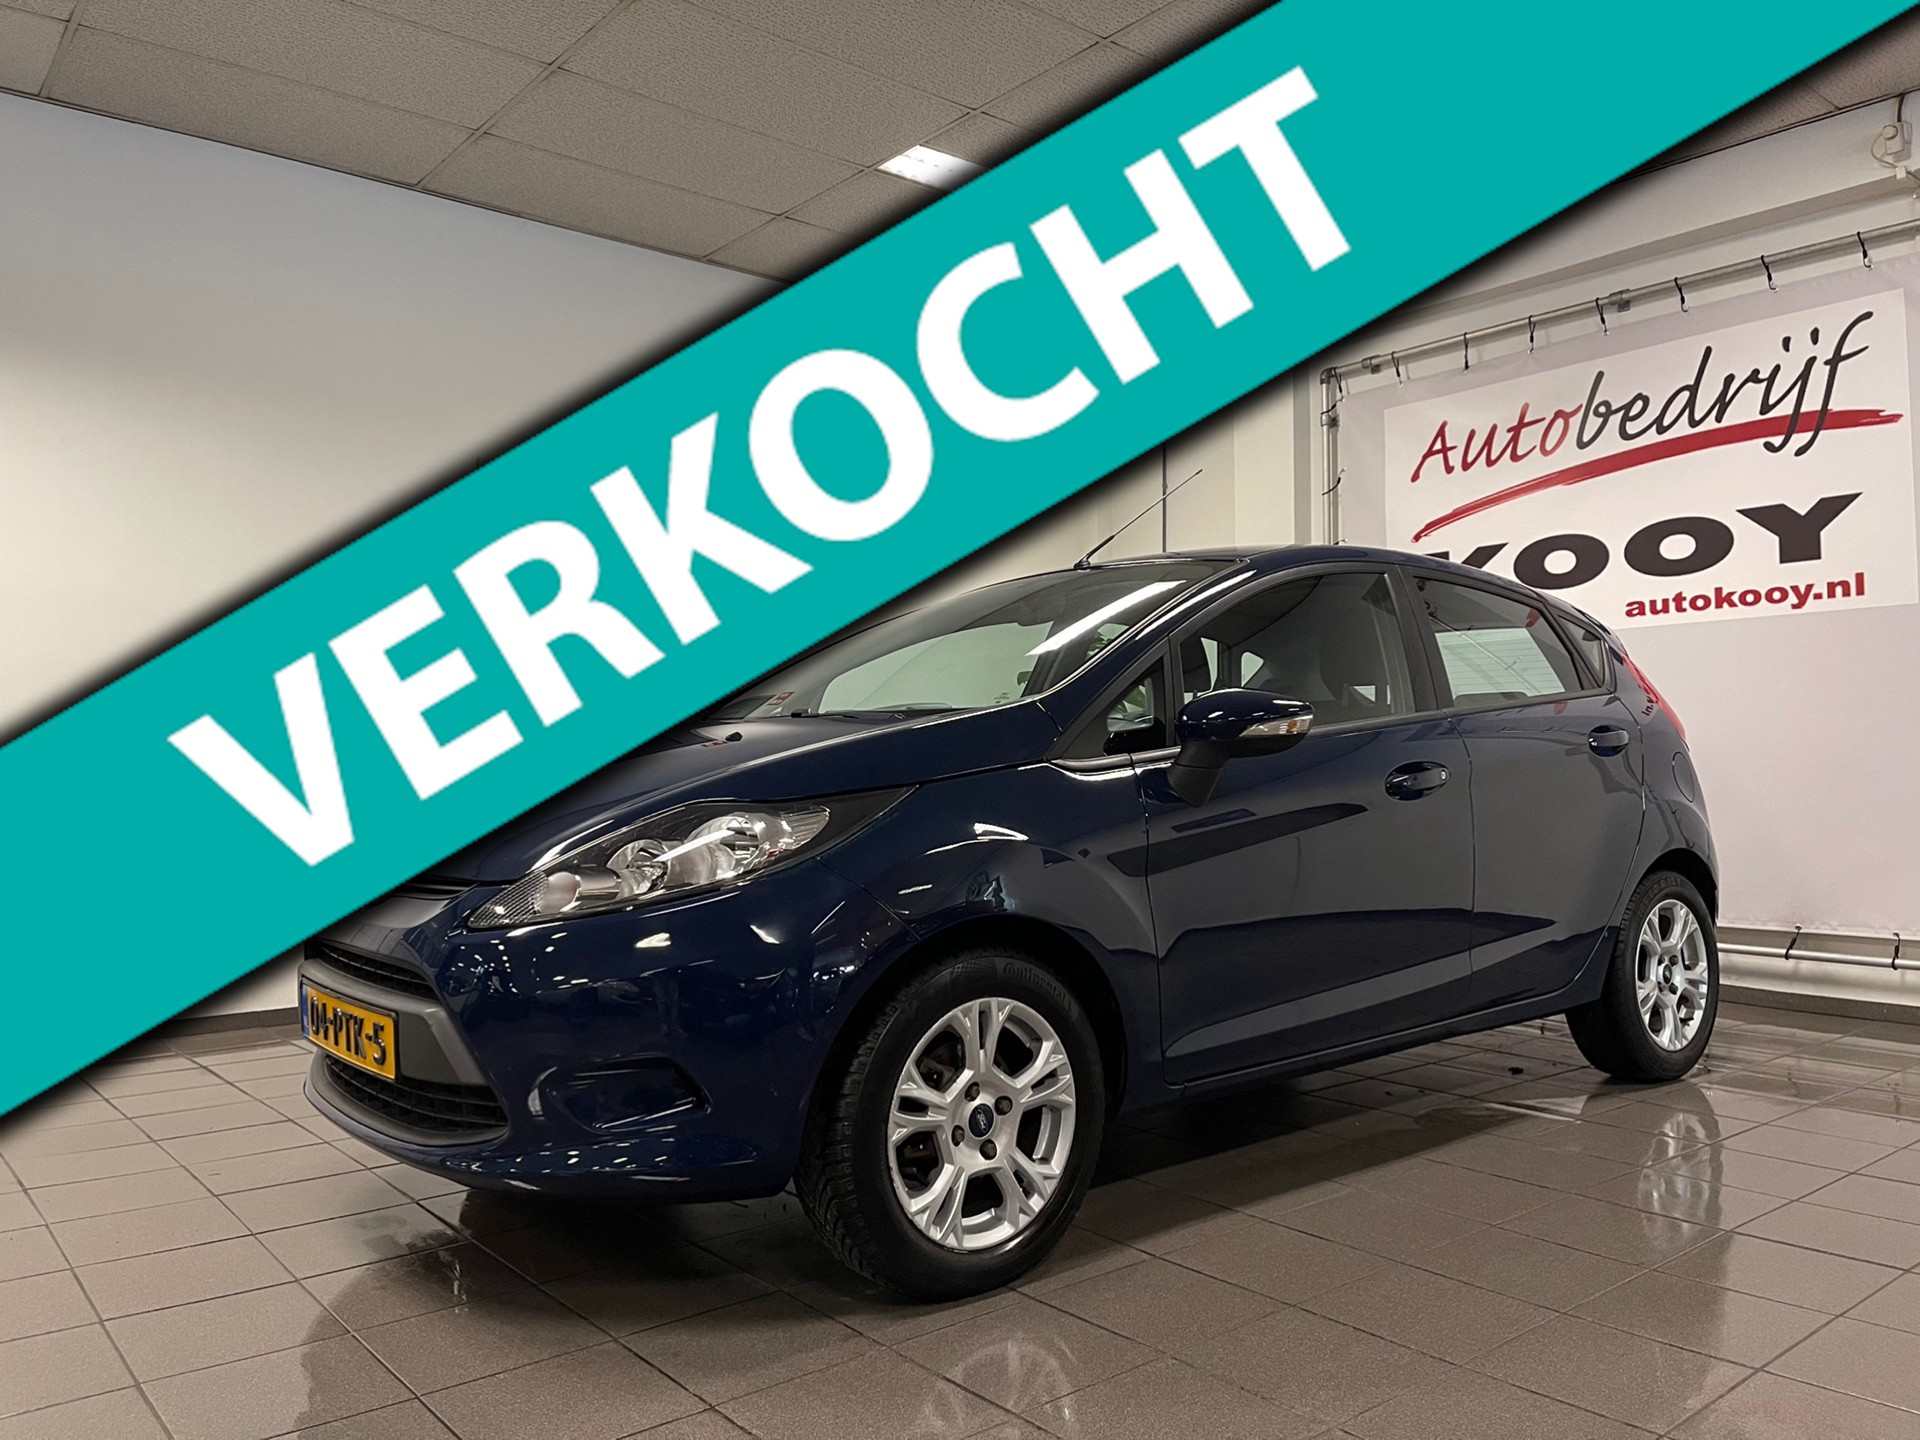 Ford Fiesta 1.25 Limited * Airco / LM Velgen / NL Auto *